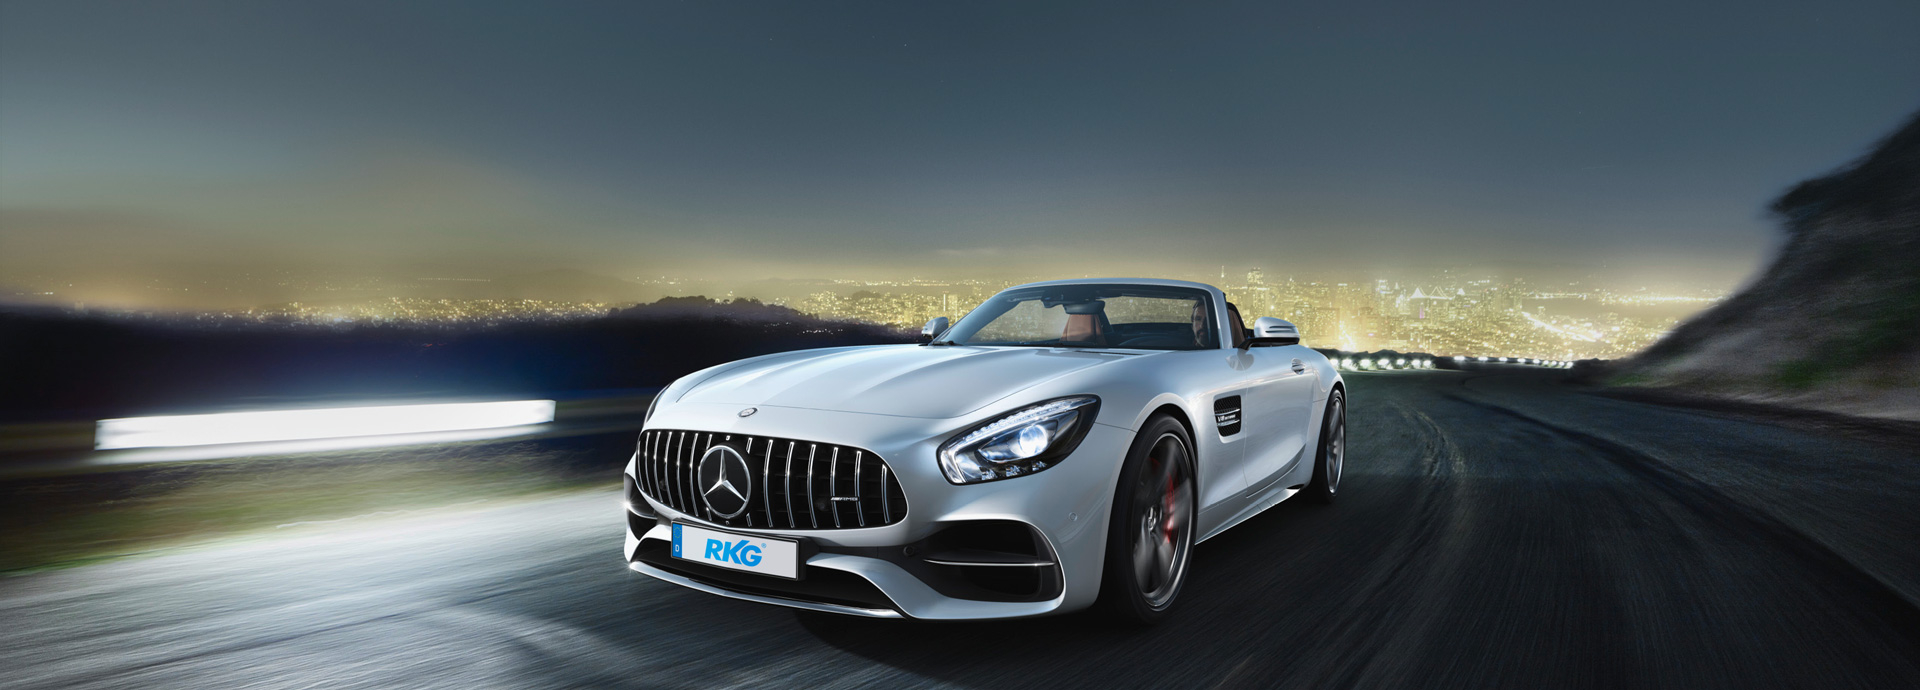 Mercedes Benz AMG - Purest Driving Performance bei RKG